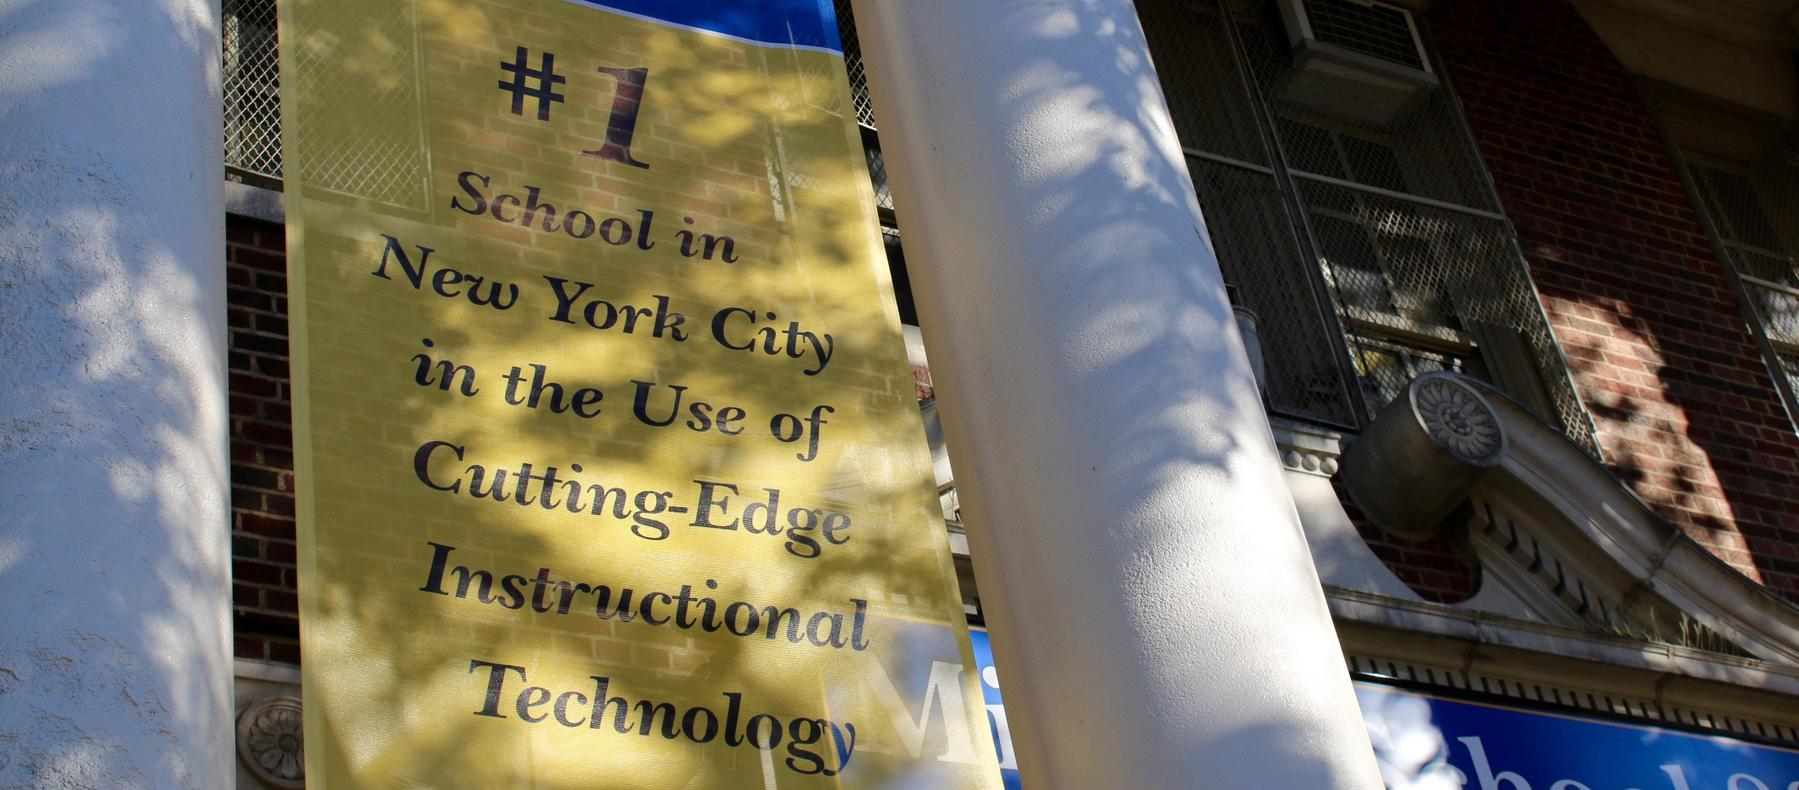 Signage: #1 School in NYC in the use of cutting edge instructional technology.